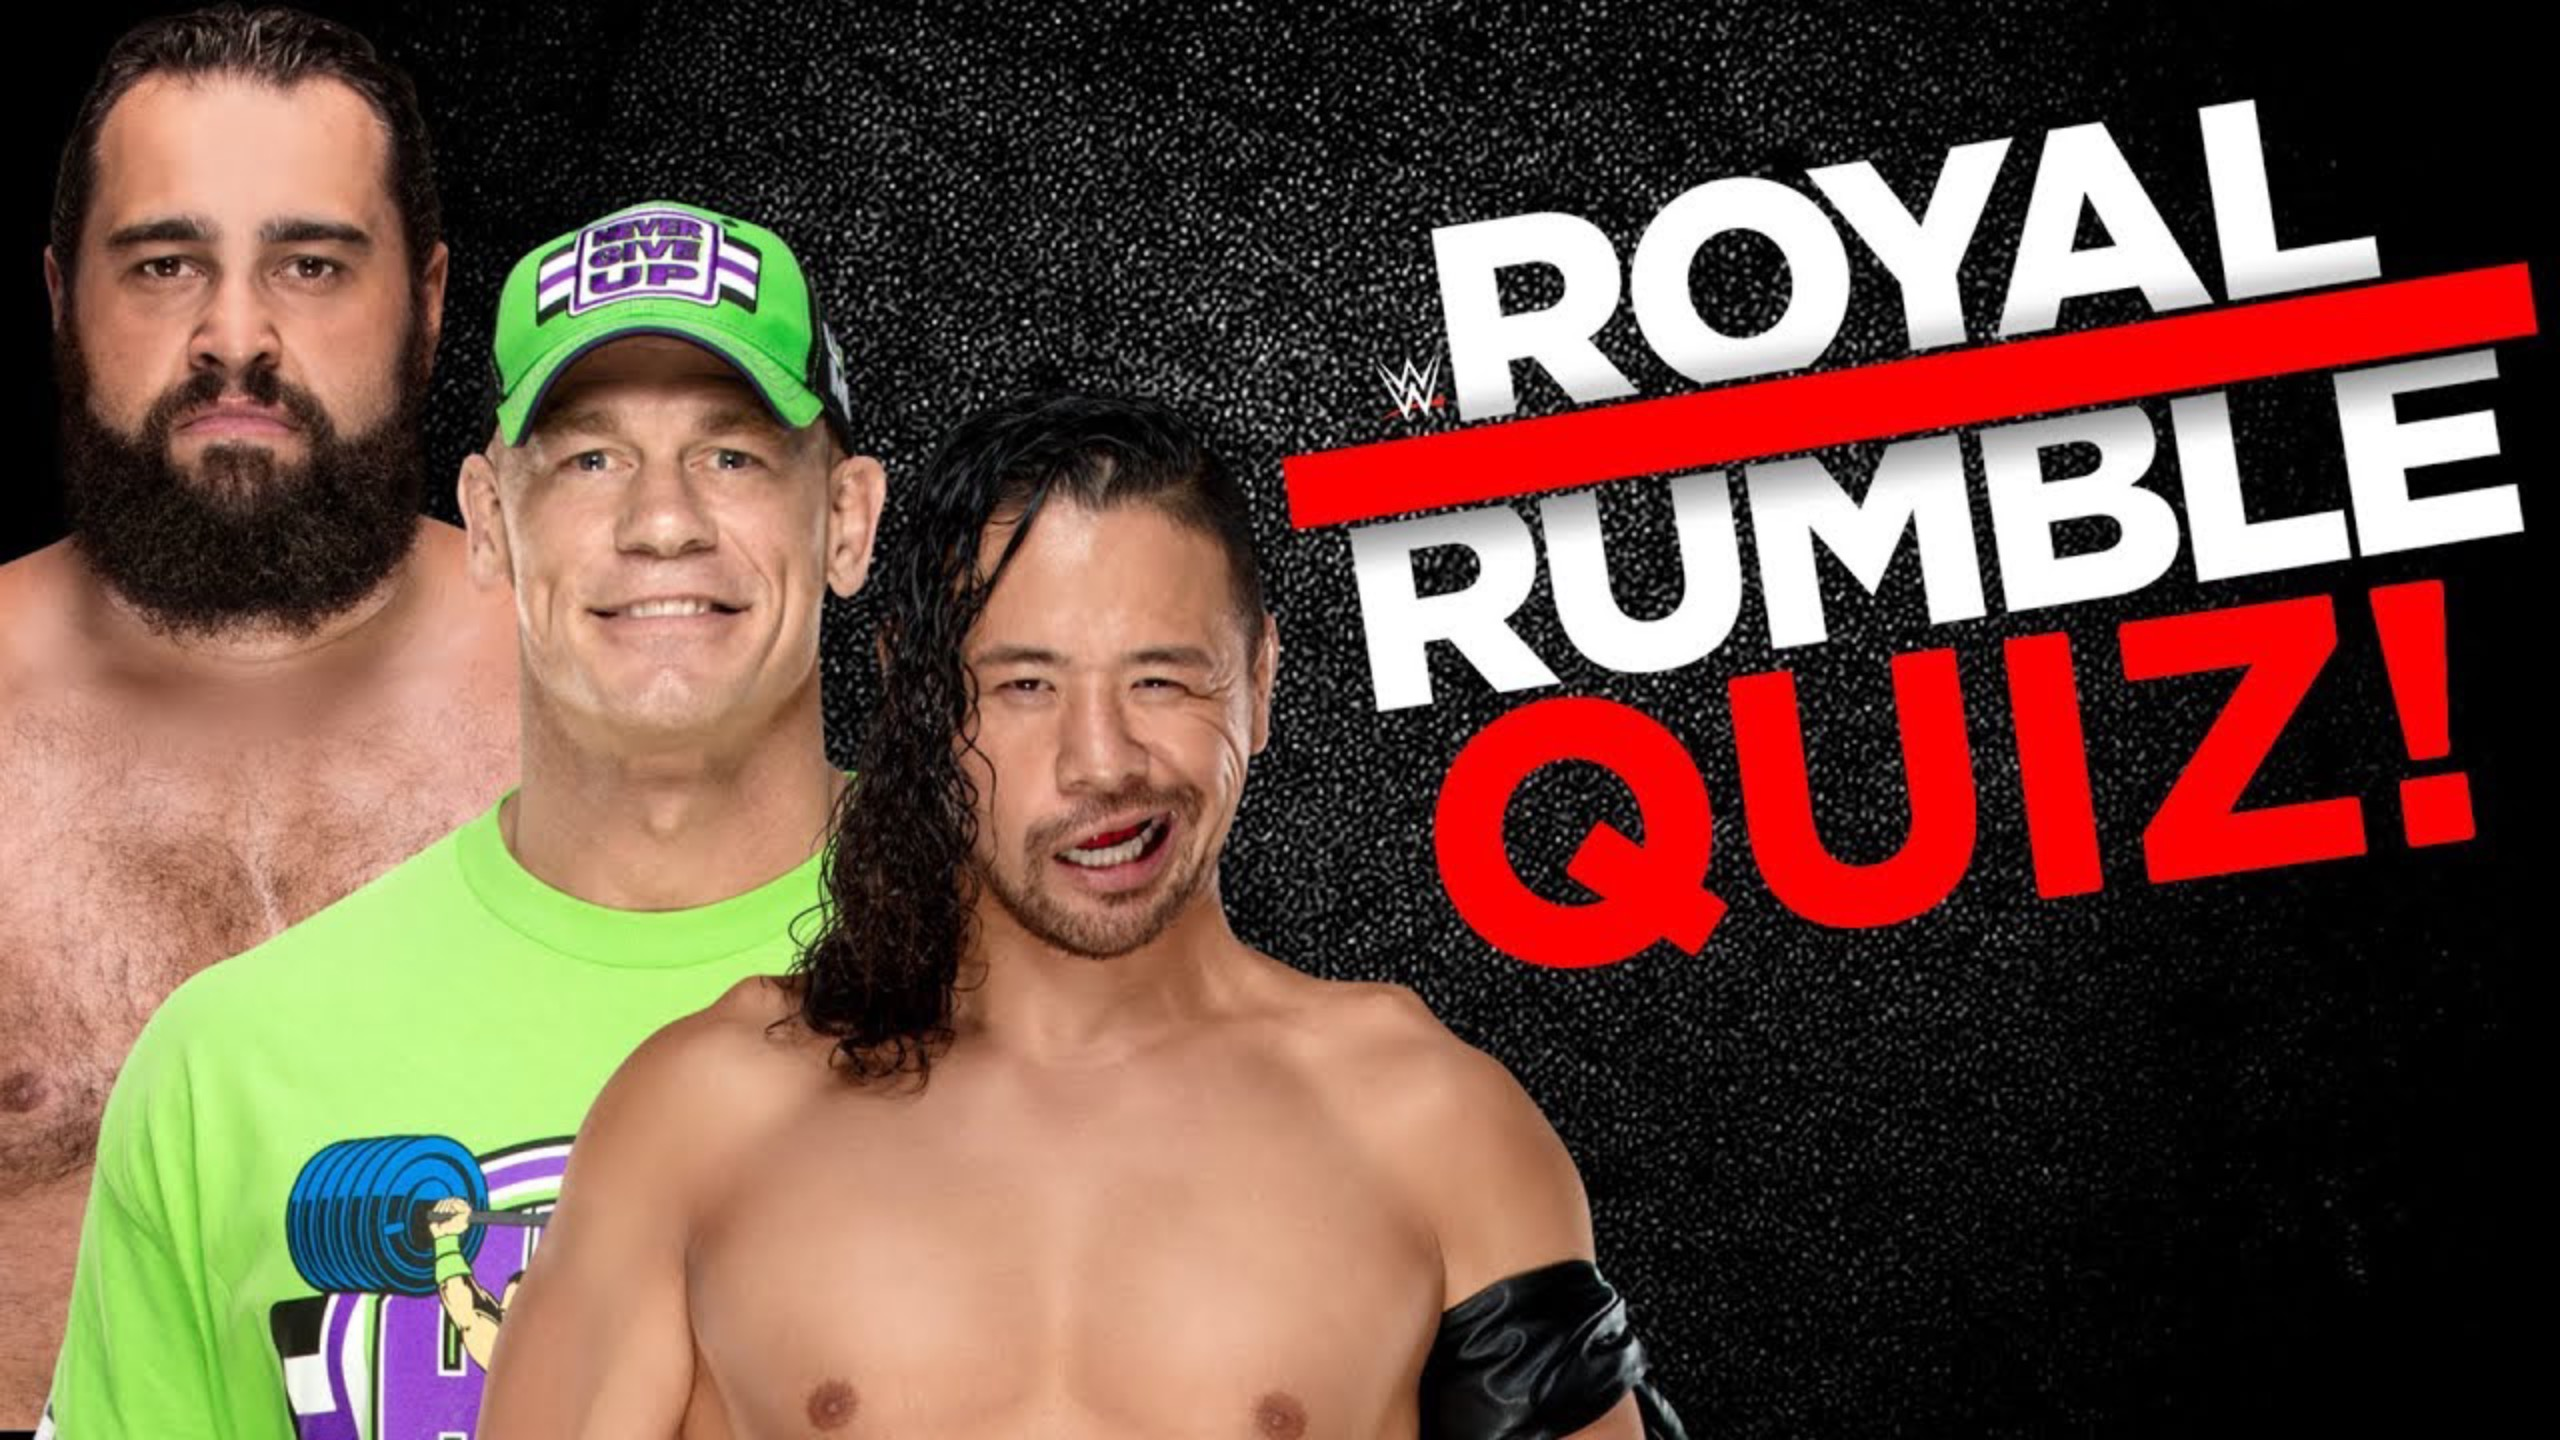 WWE Royal Rumble - Quick Questions - 1